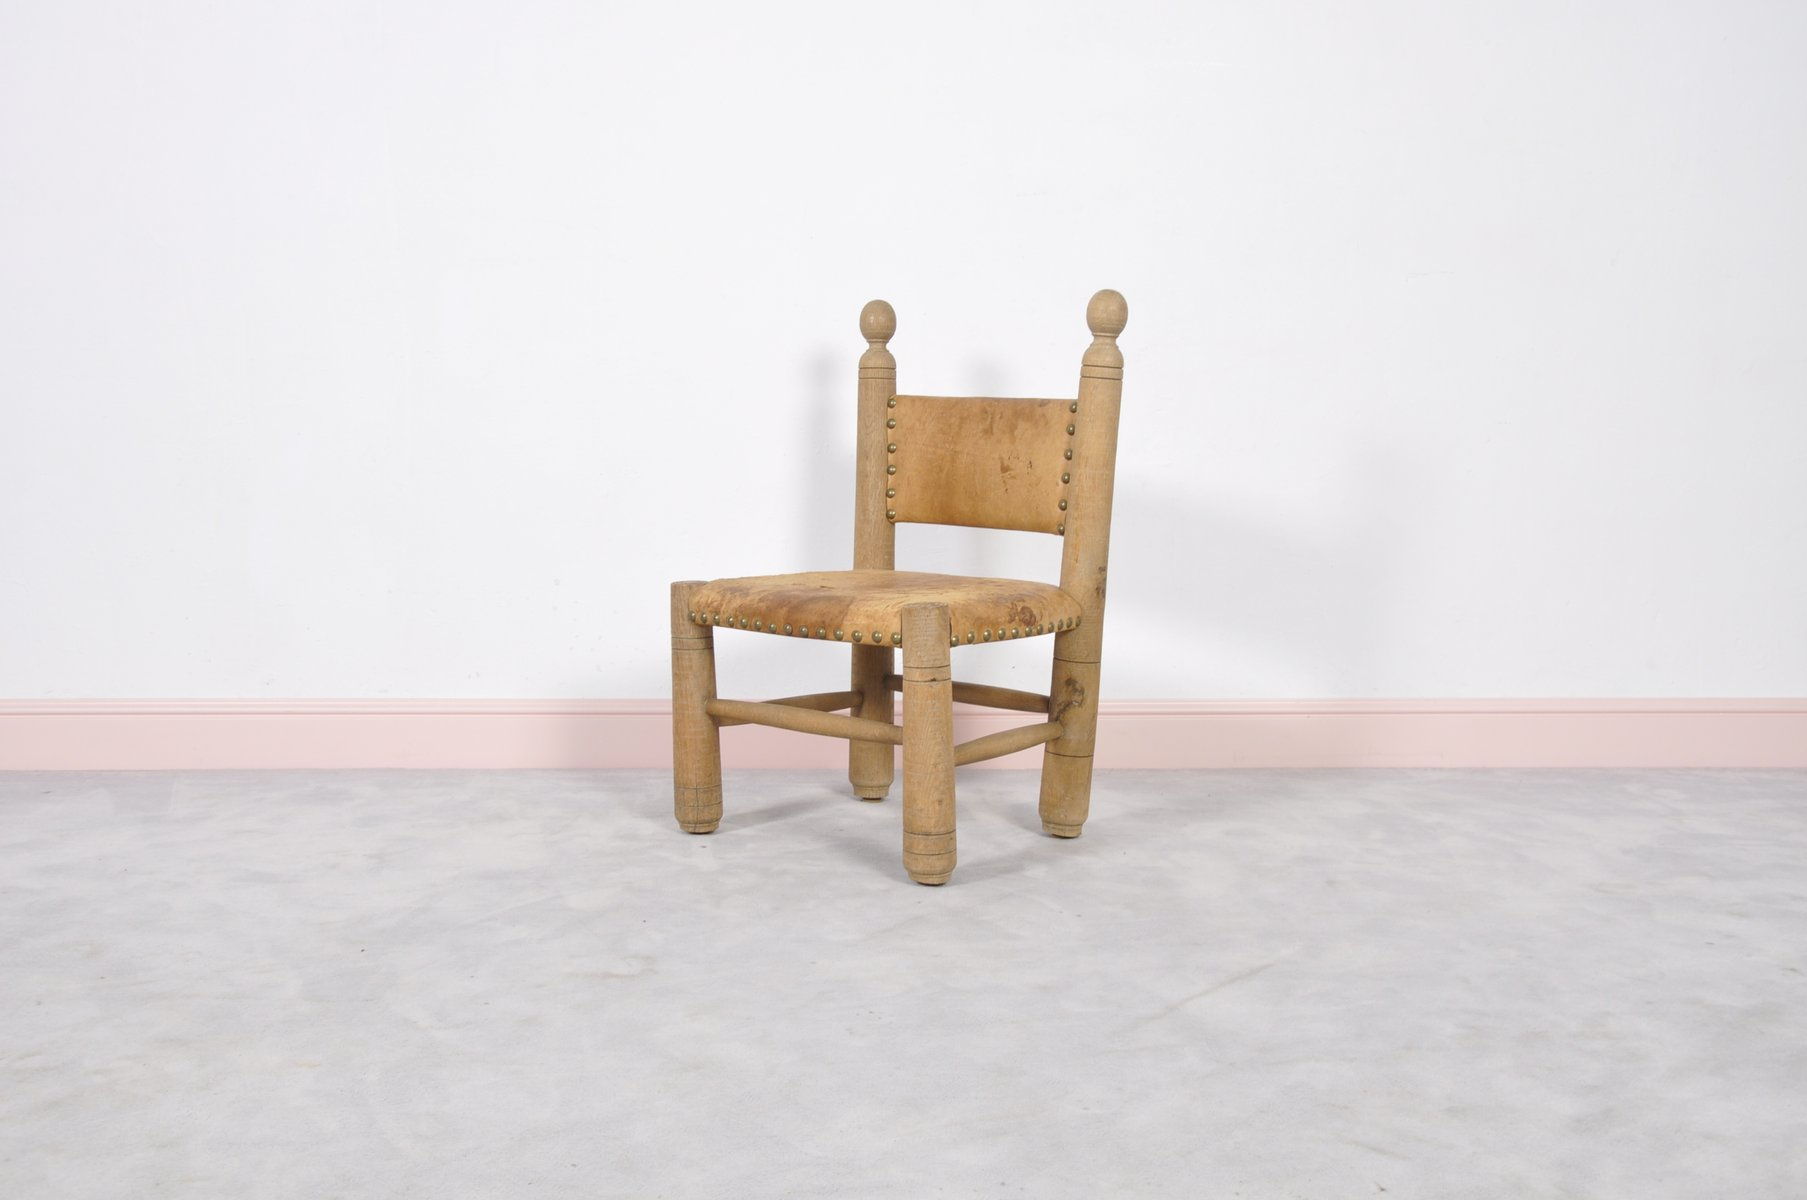 Very best Vintage Louisiana Ladder-Back Child's Chair for sale at Pamono EB32